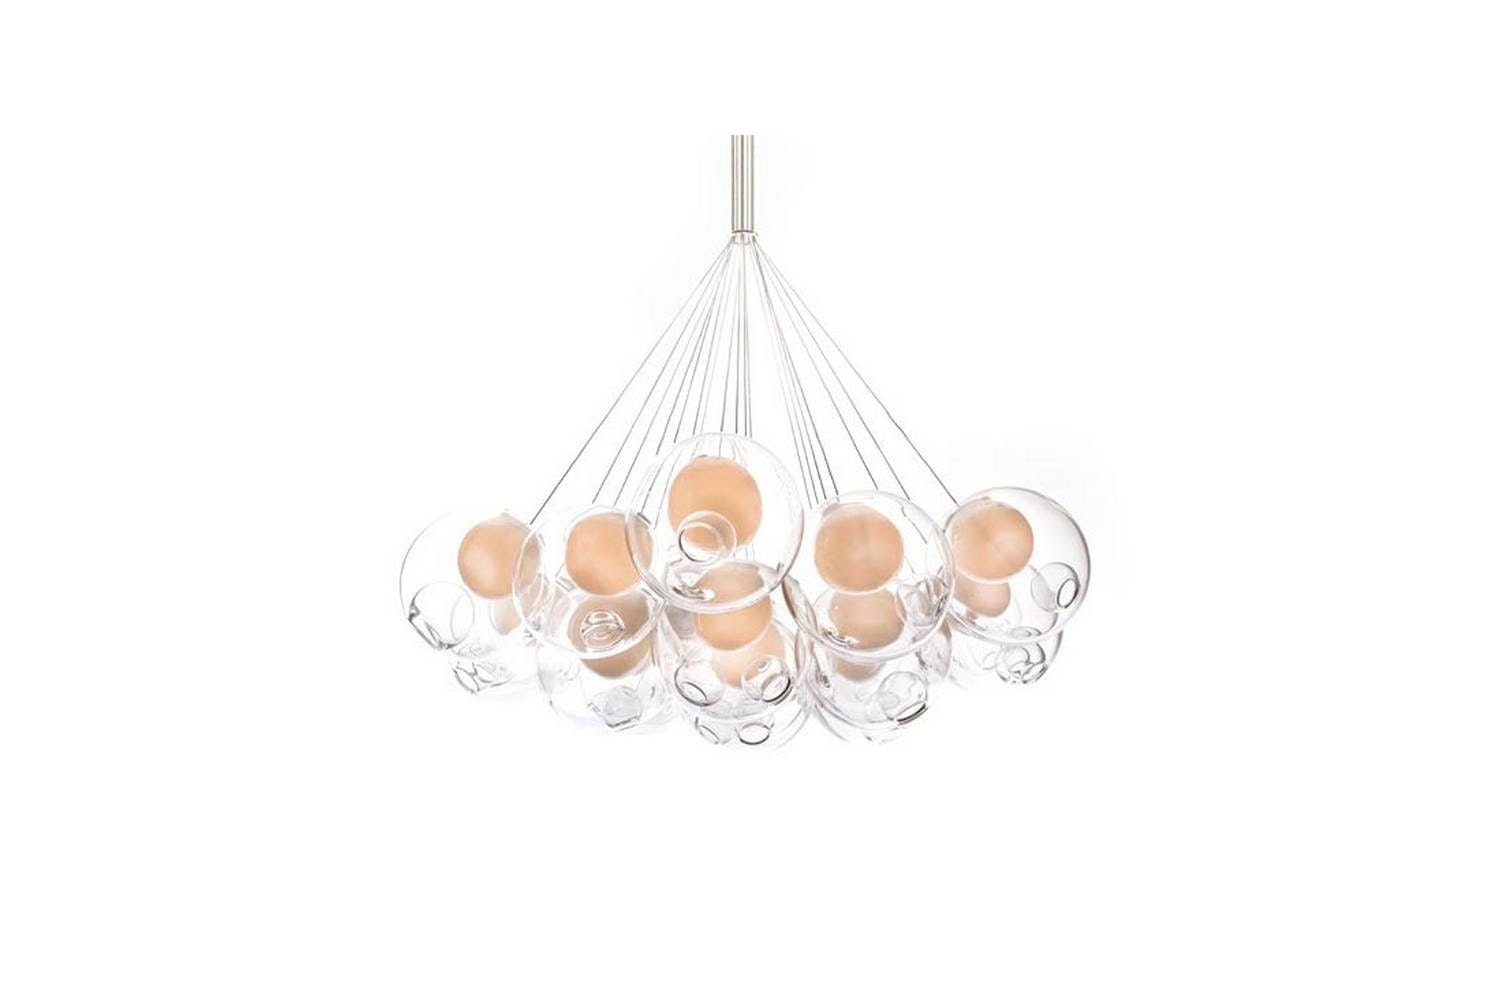 28.19 Cluster Suspension Lamp by Omer Arbel for Bocci